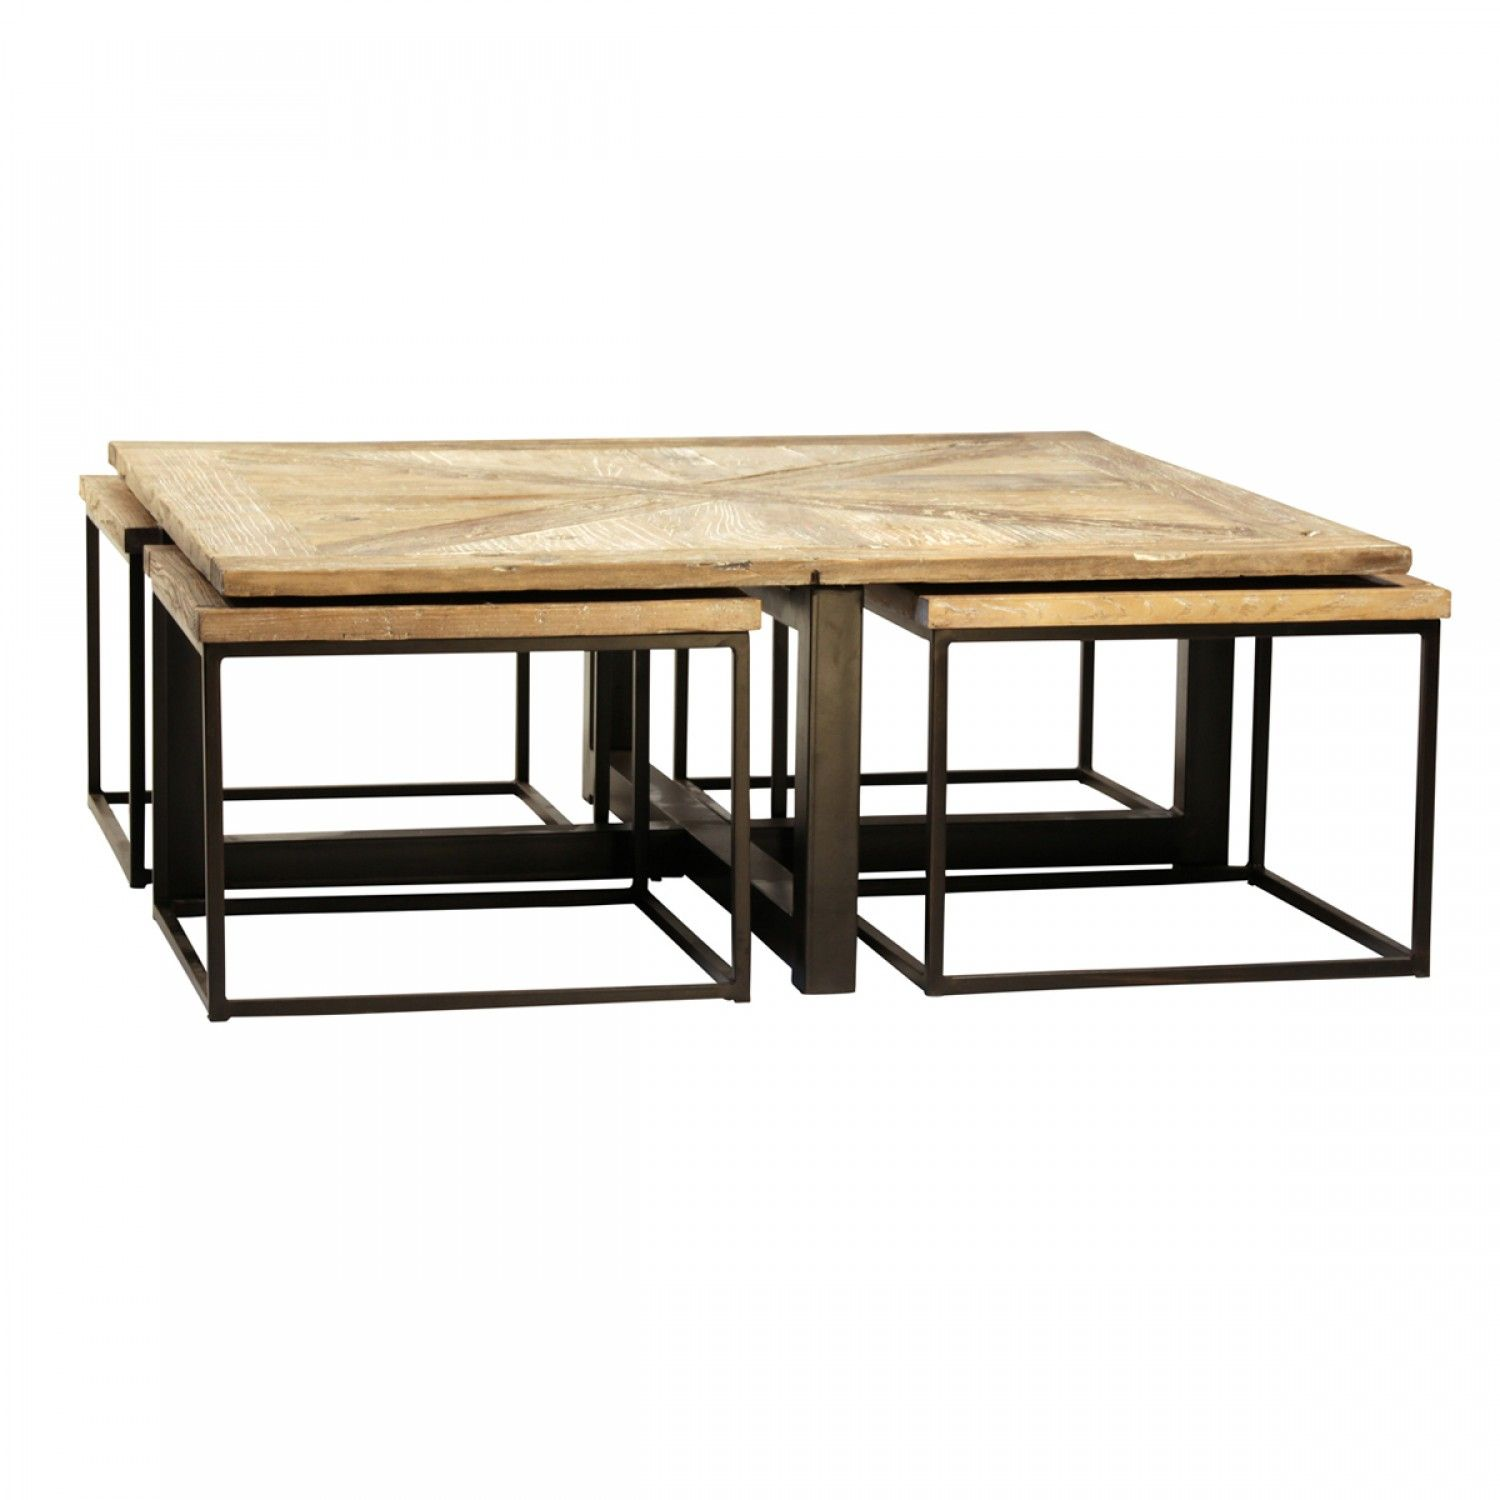 Parquet Drayton Nesting Coffee Tables Set of 5 $1 399 20